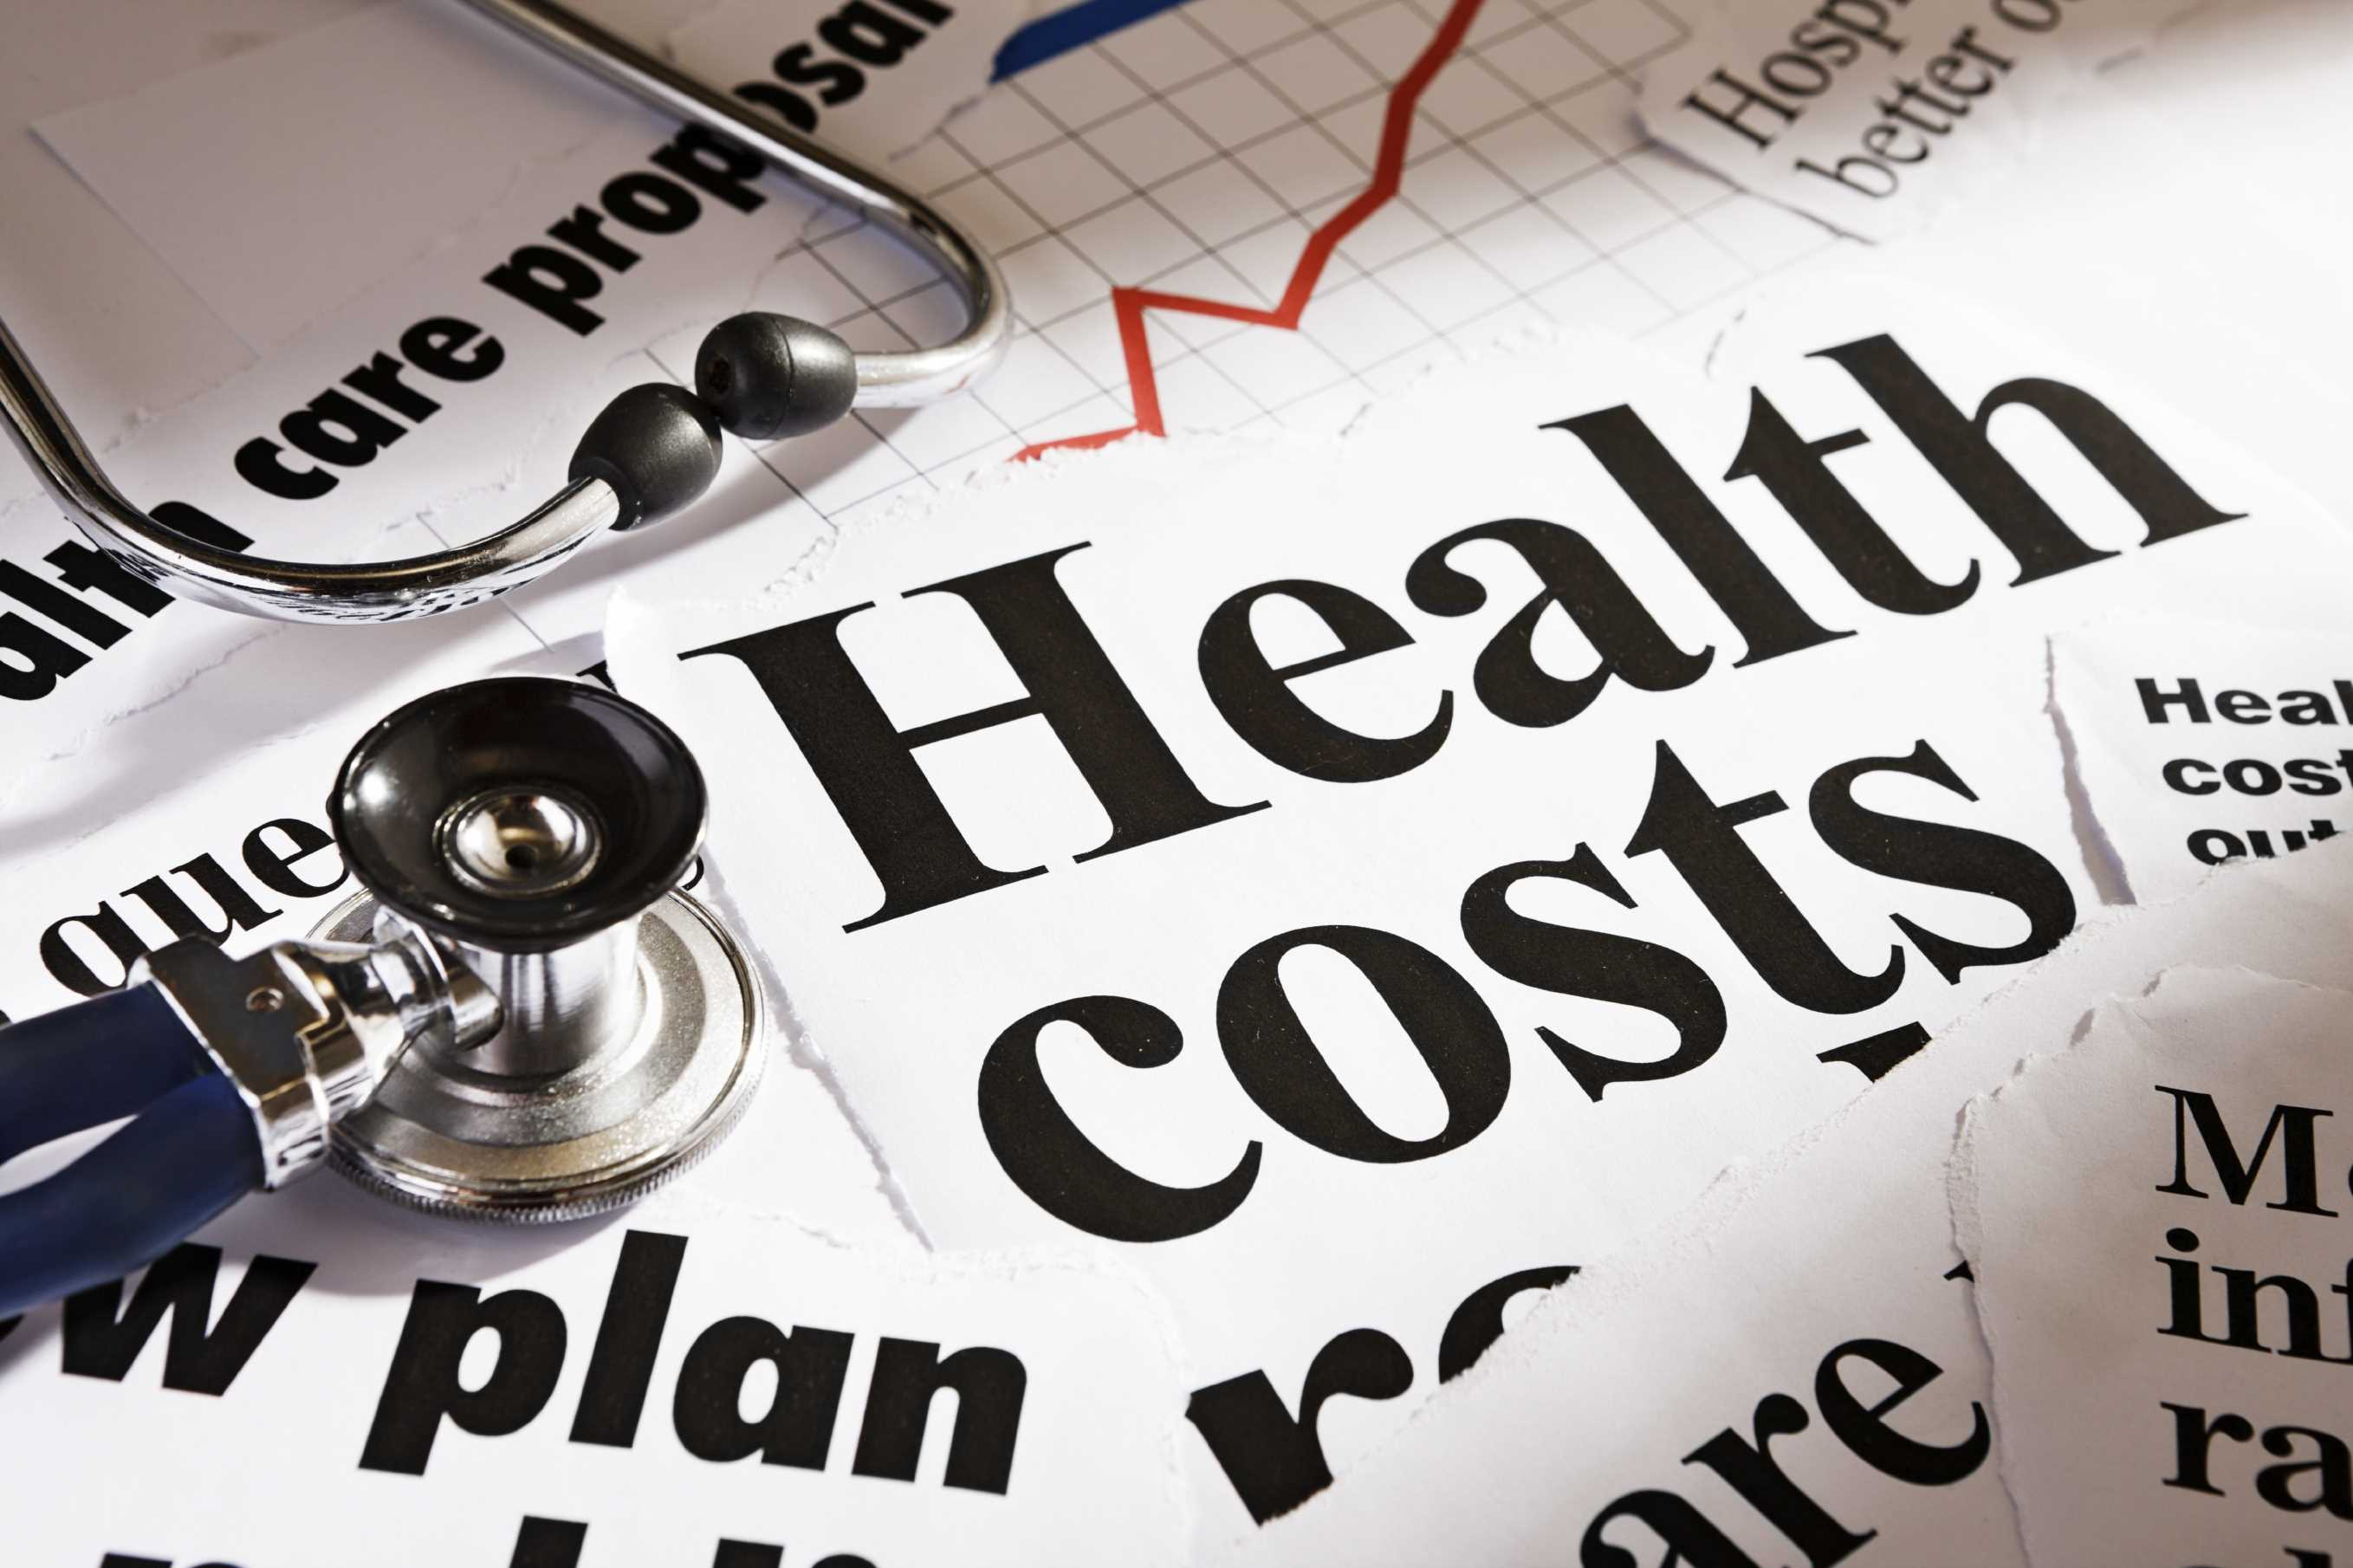 Group health care costs rise 6.1%, cost per employee tops $10,000: Mercer